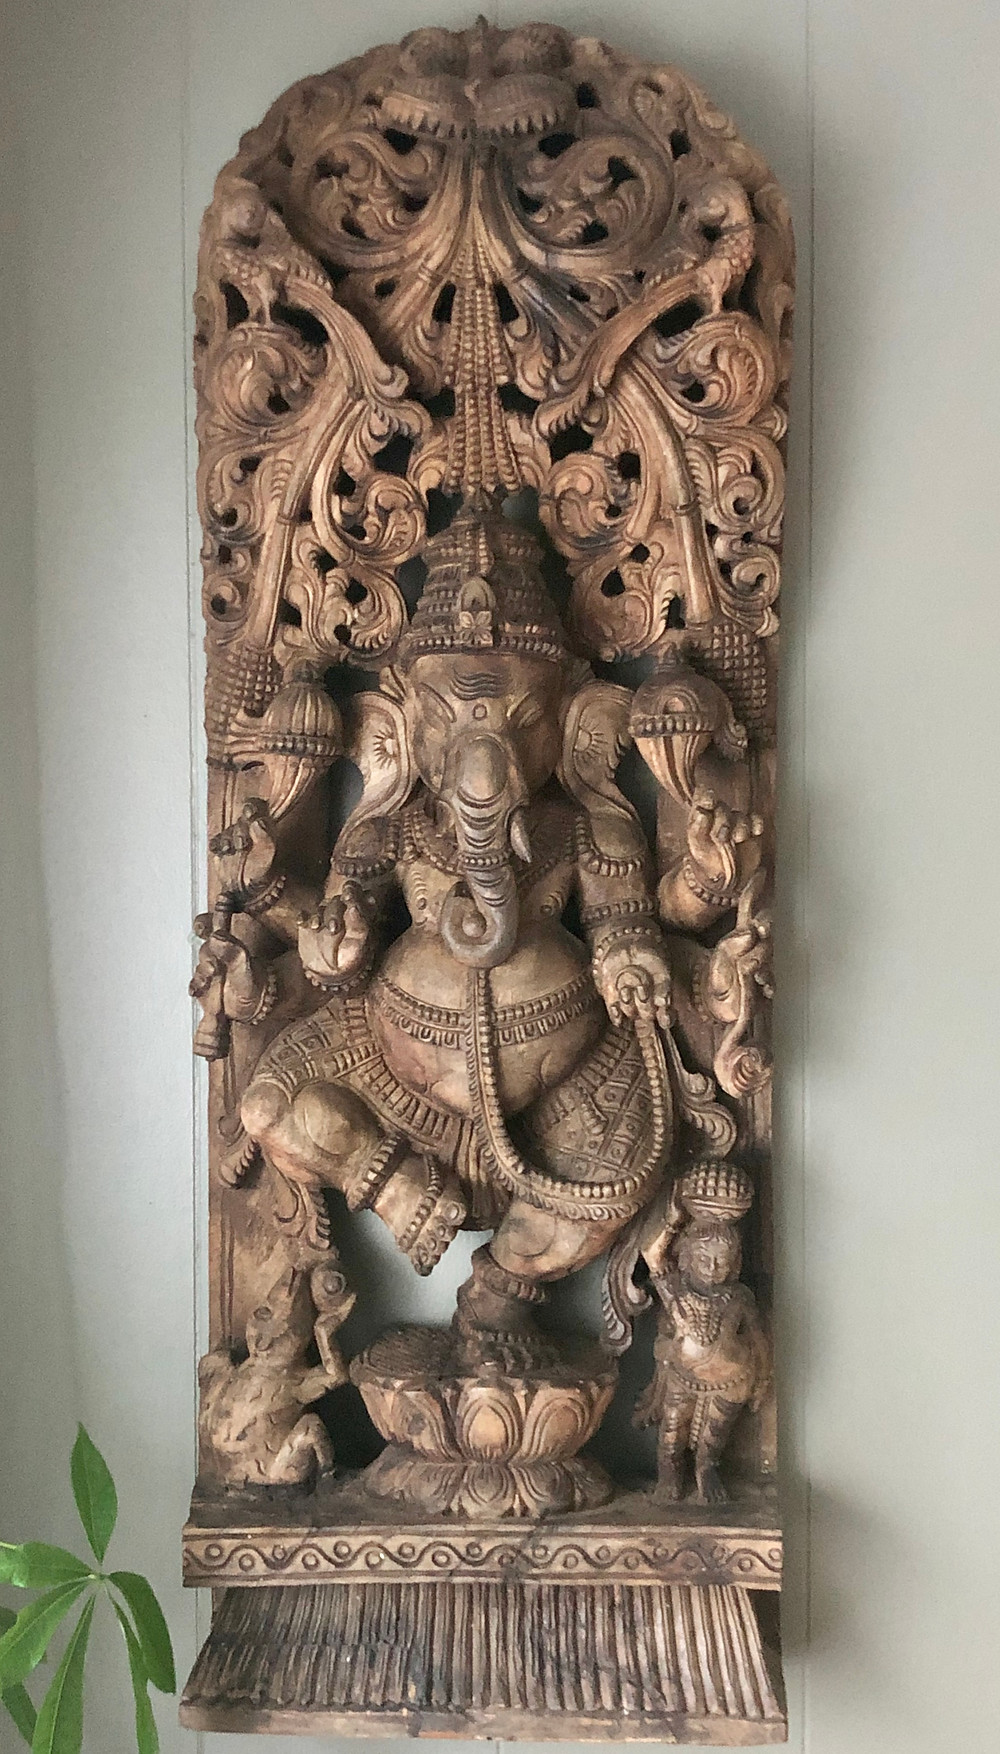 Antique carving depicting the stories about ganesha